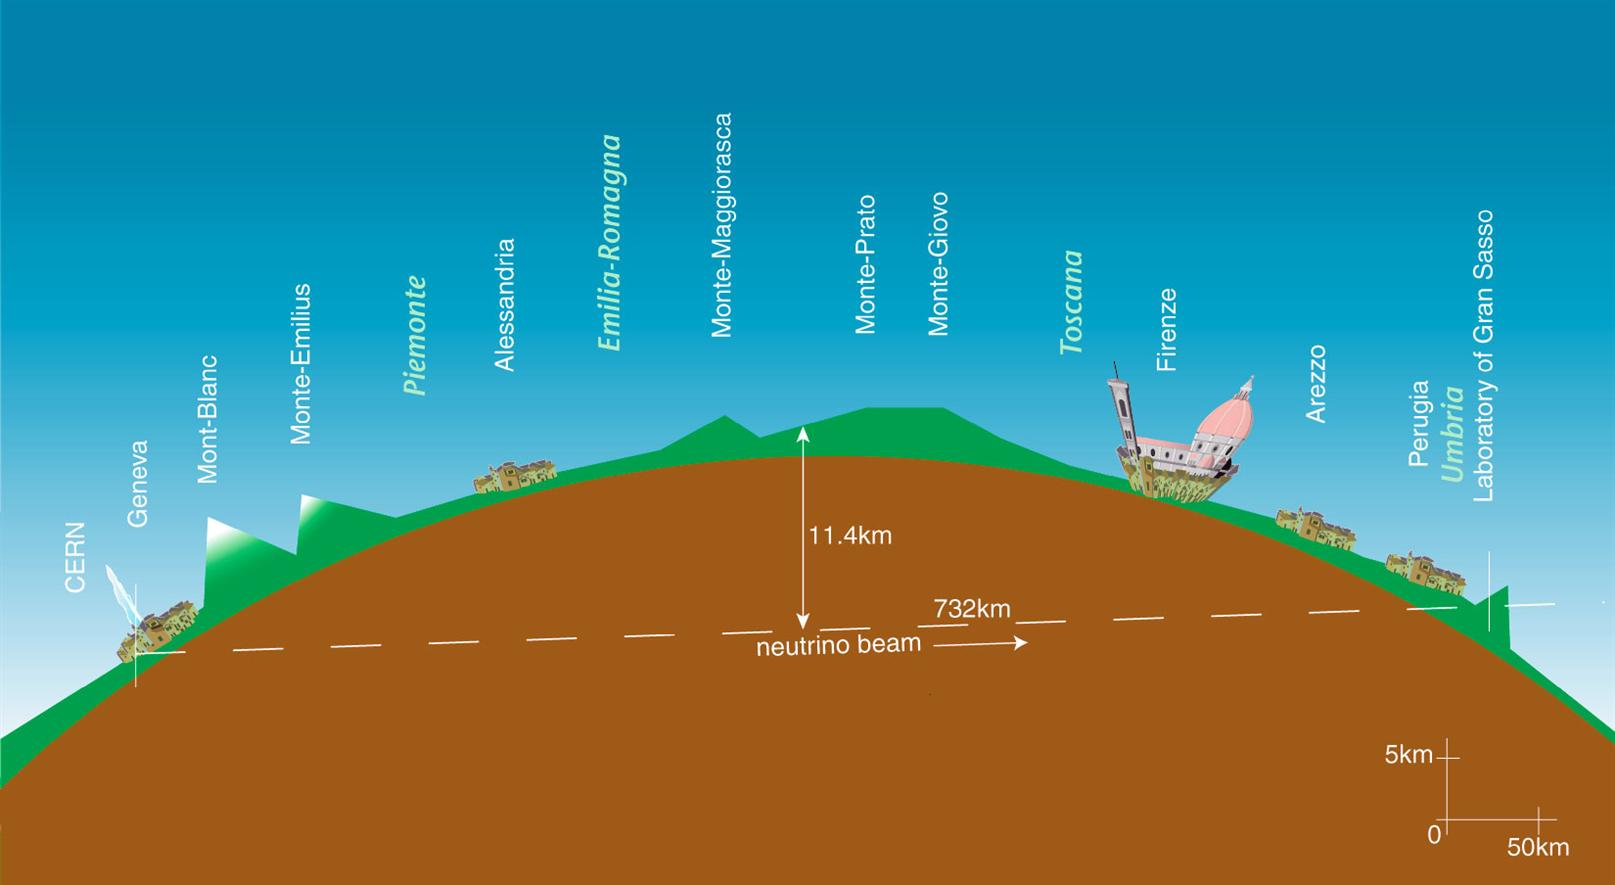 Diagram of CNGS neutrinos travelling through the Earth